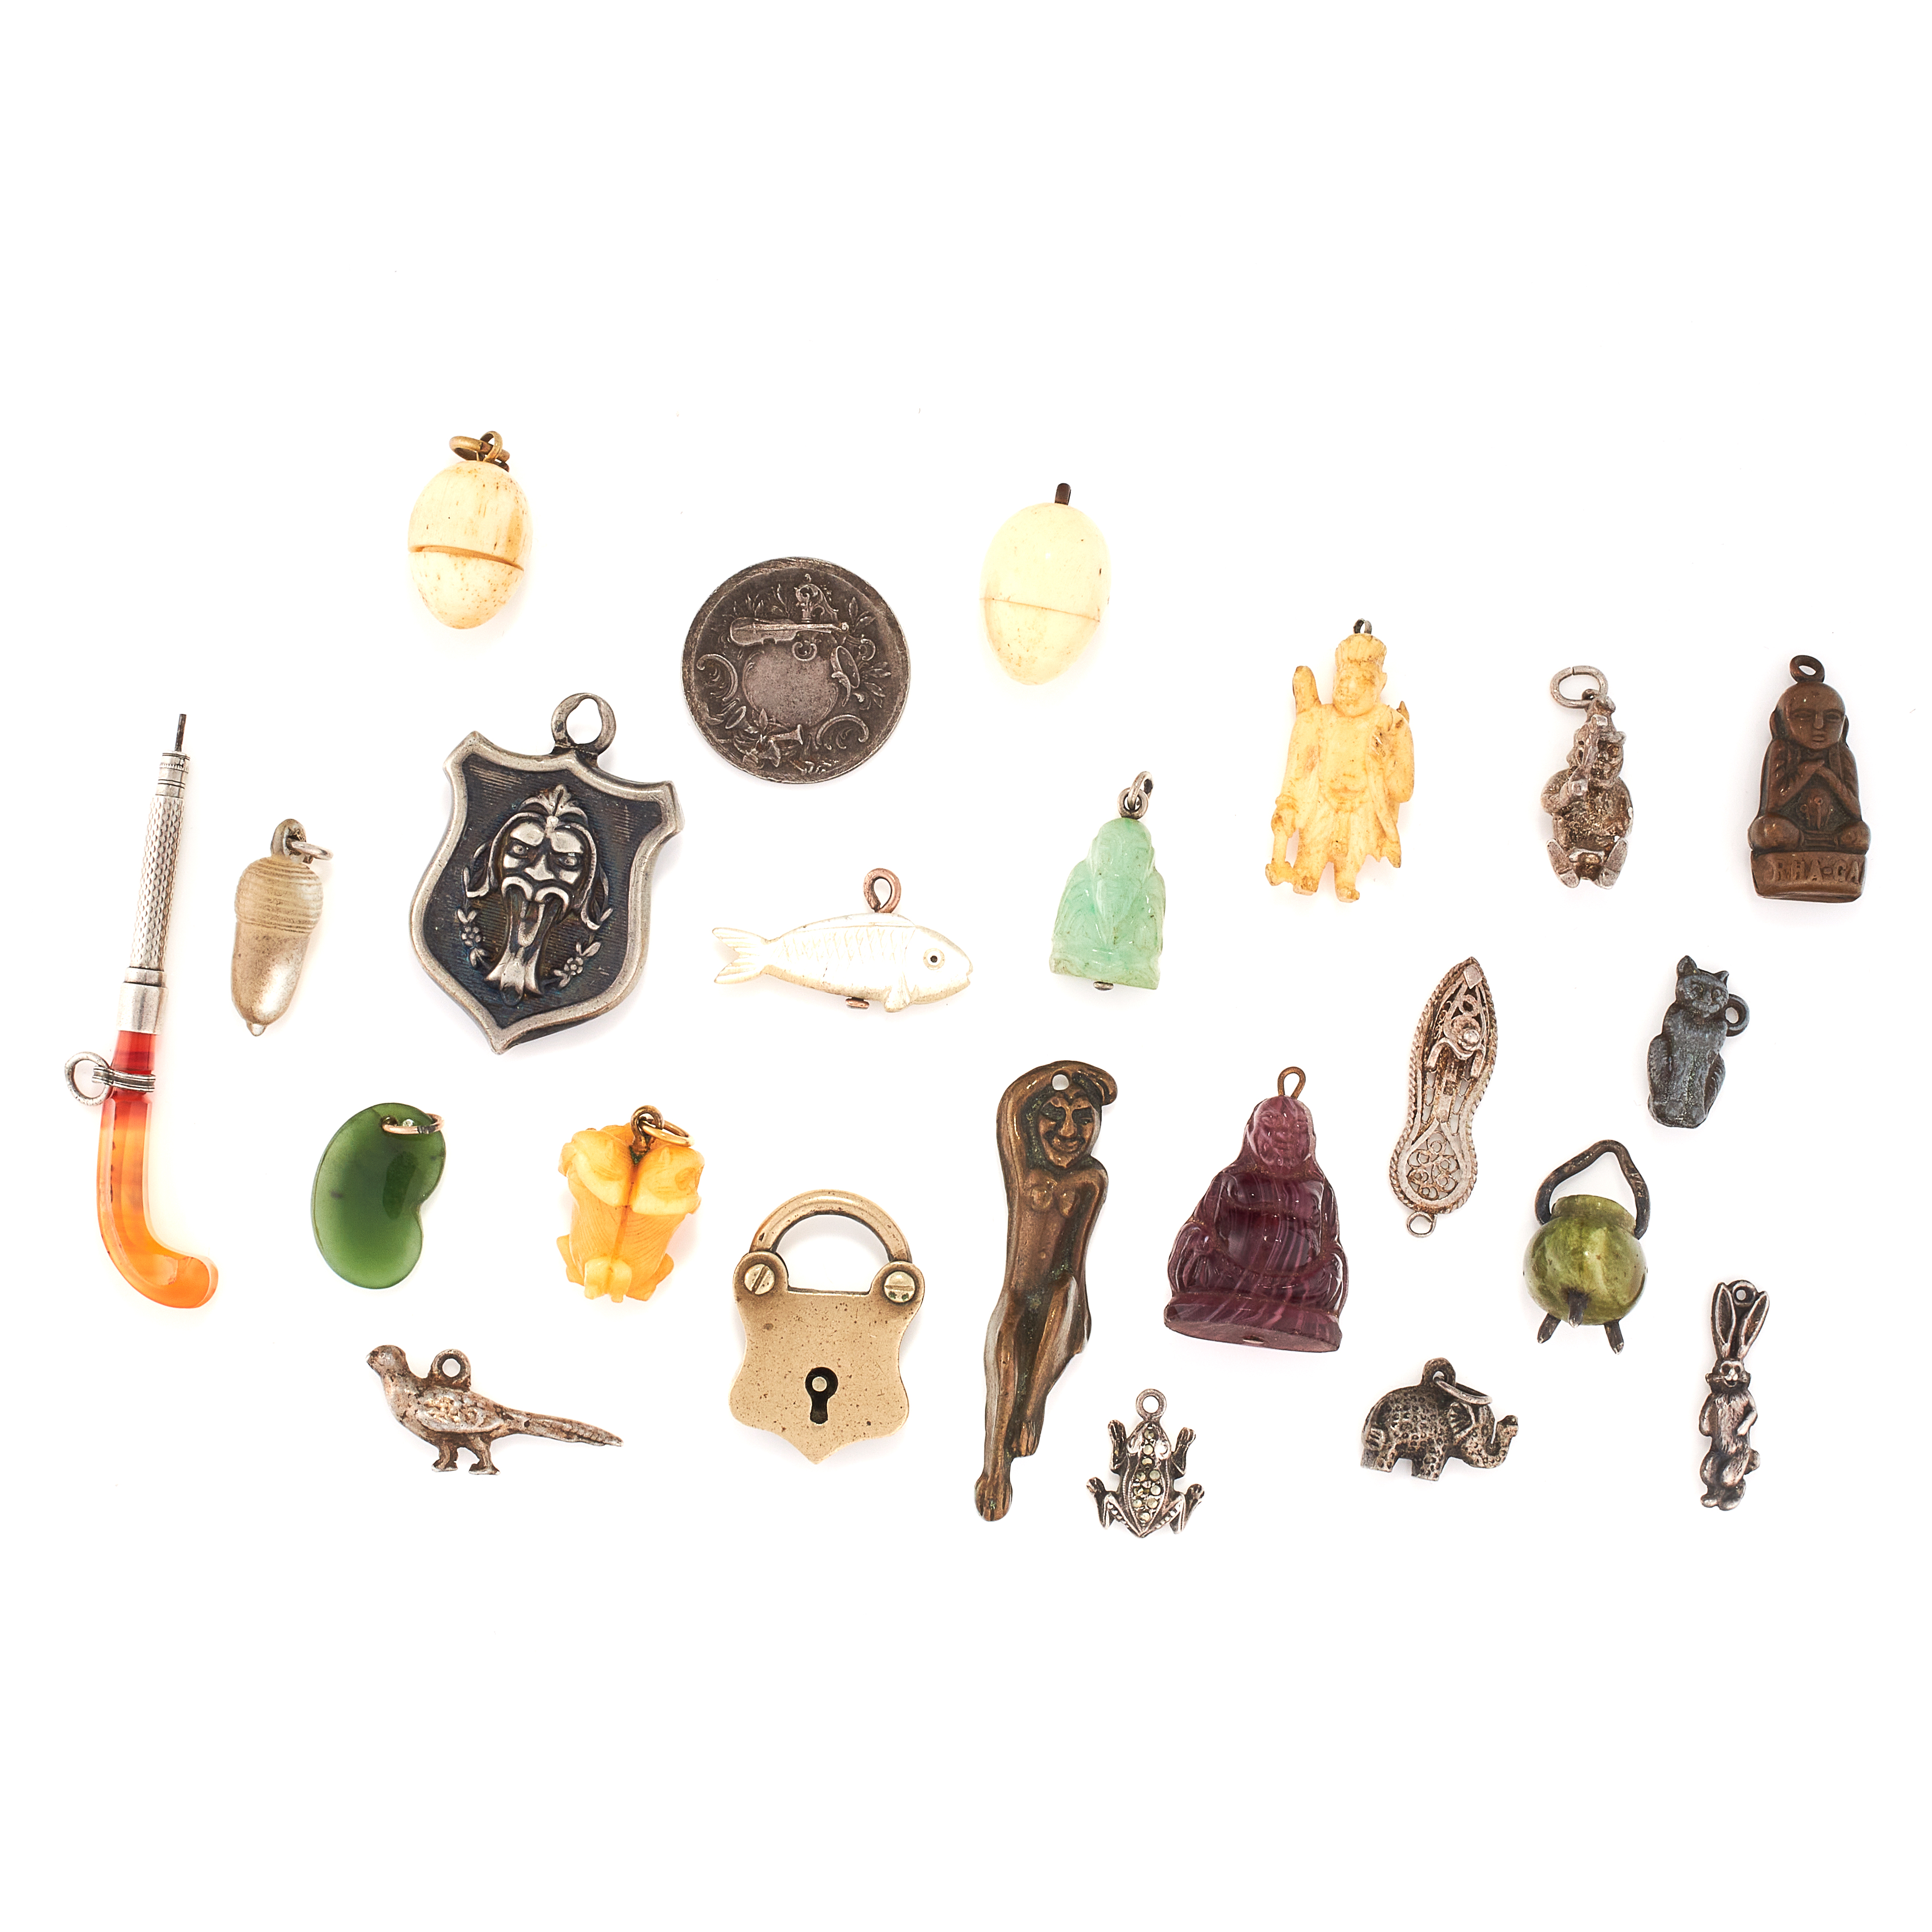 A MIXED LOT OF ANTIQUE CHARMS comprising of two carved ivory egg charms, each containing a small